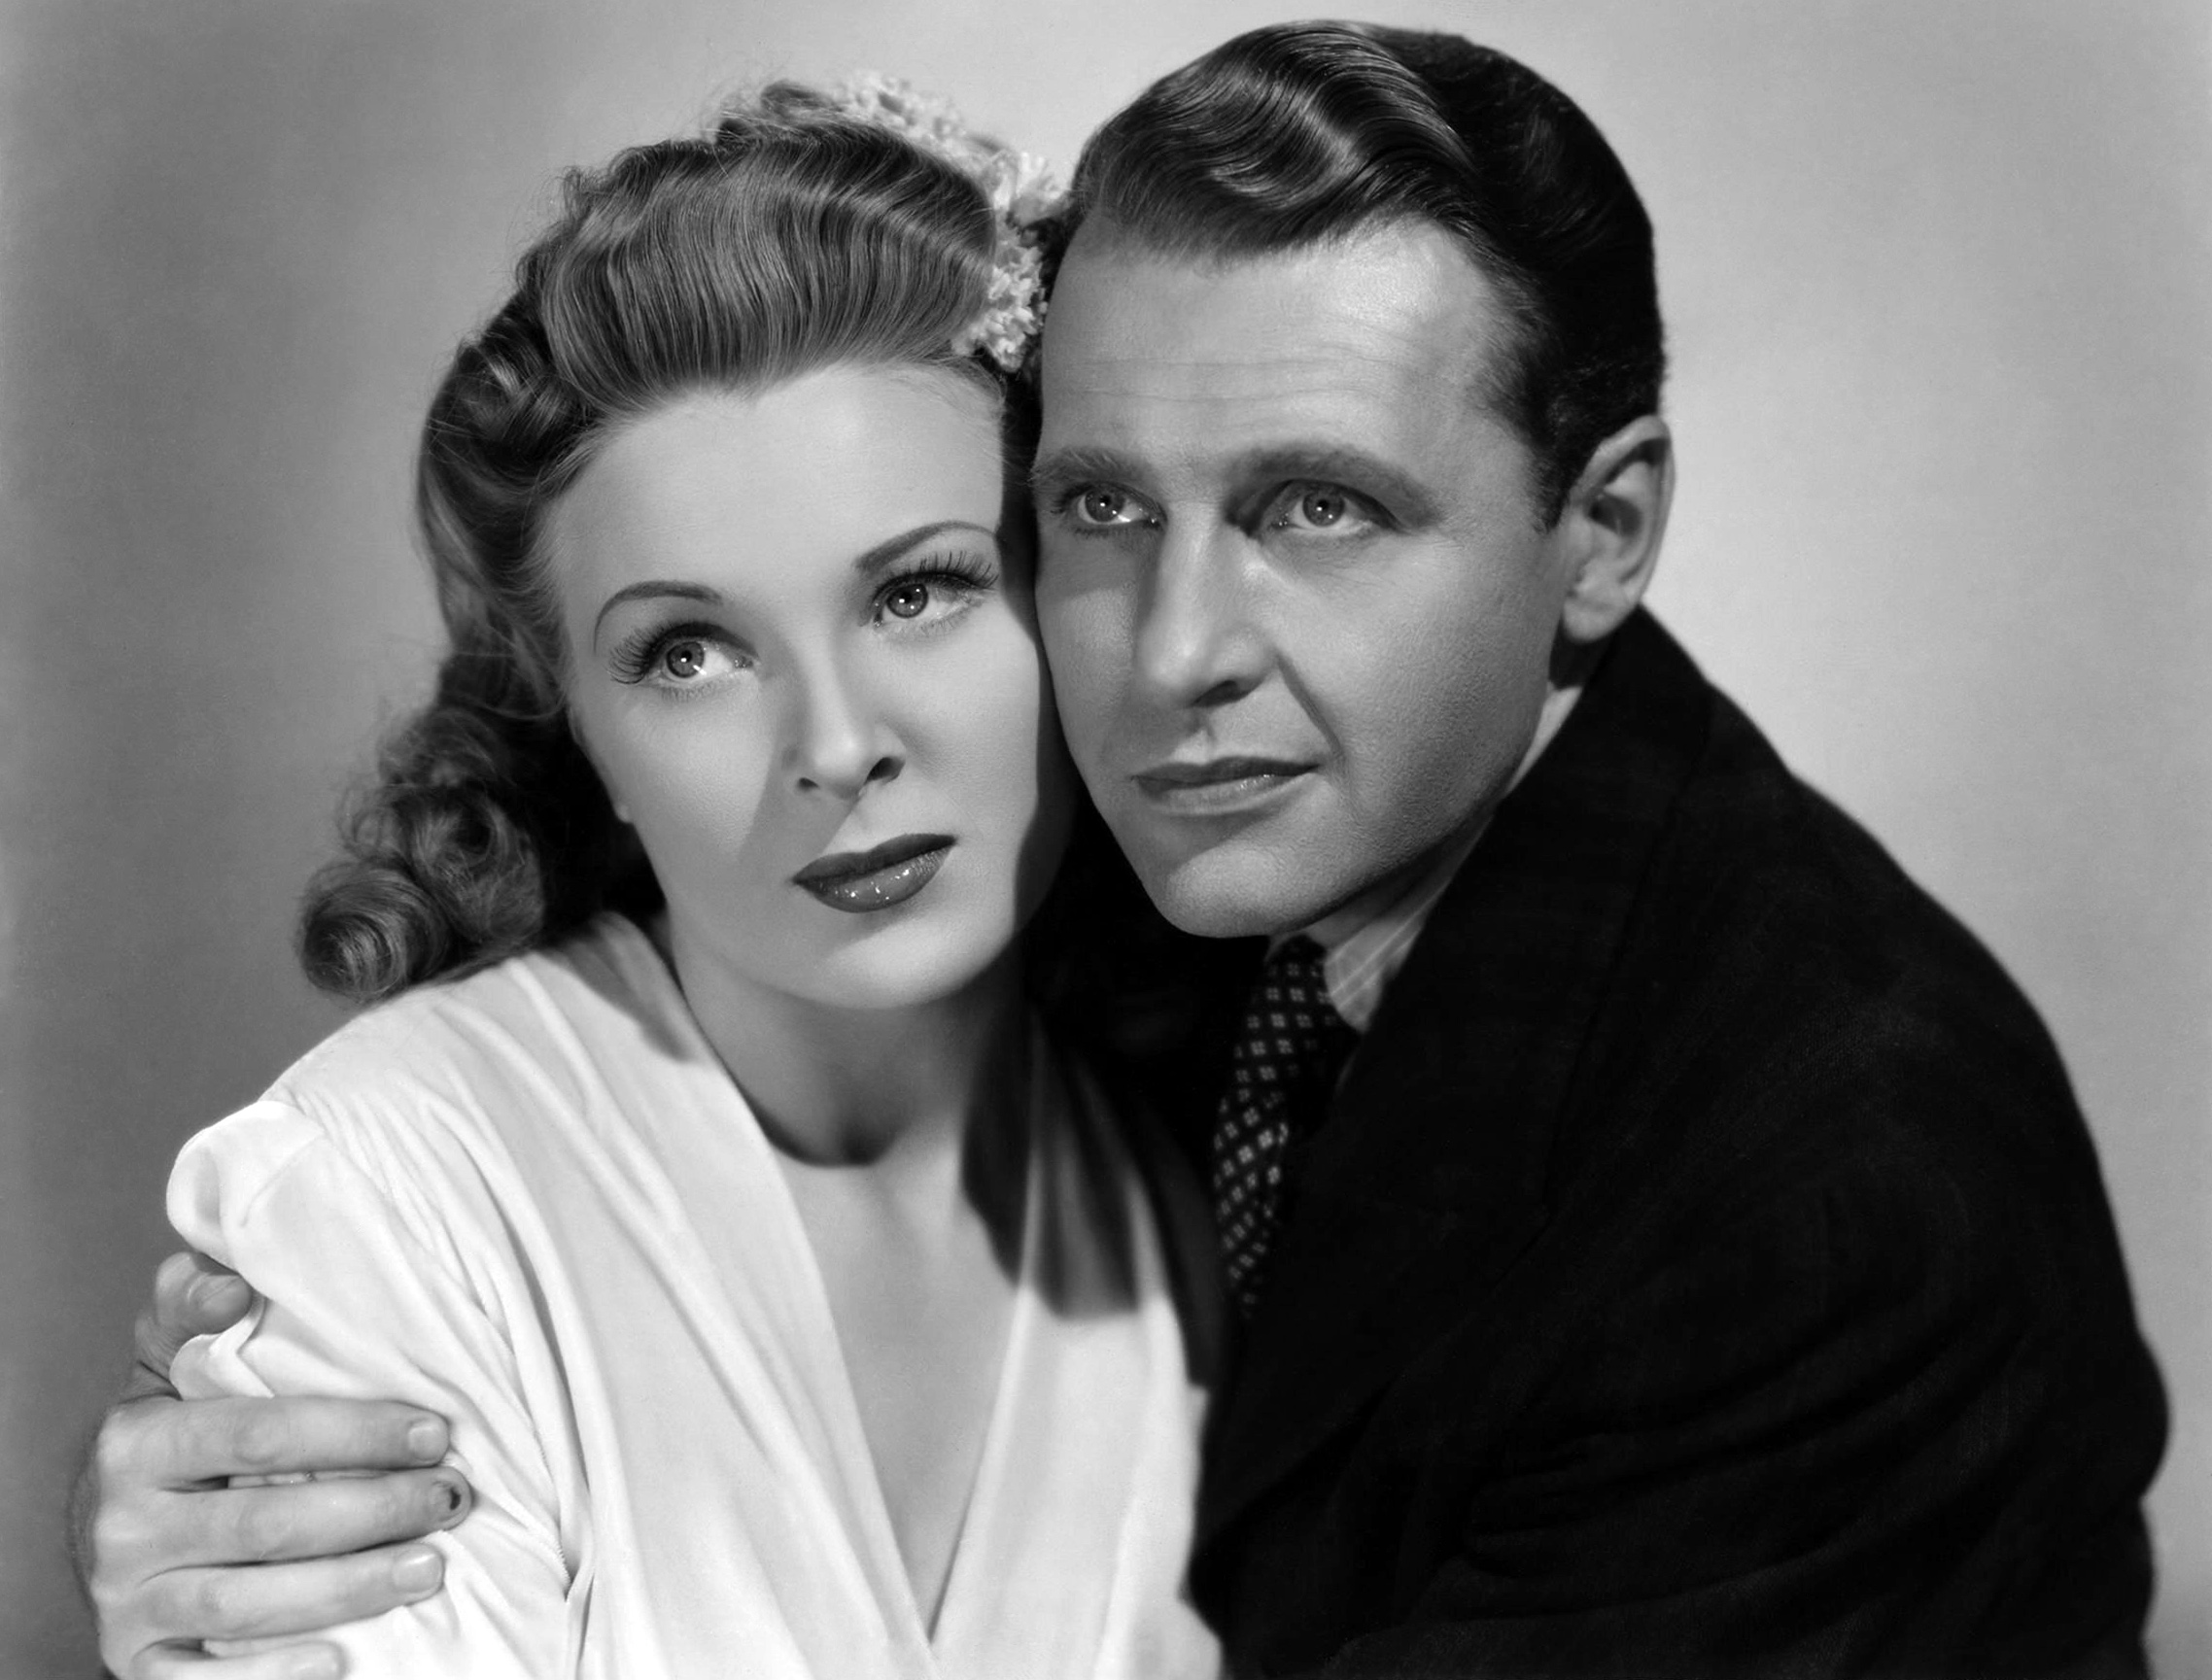 Annex - Ralph Bellamy and Ankers, Evelyn (Ghost of Frankenstein, The)_01